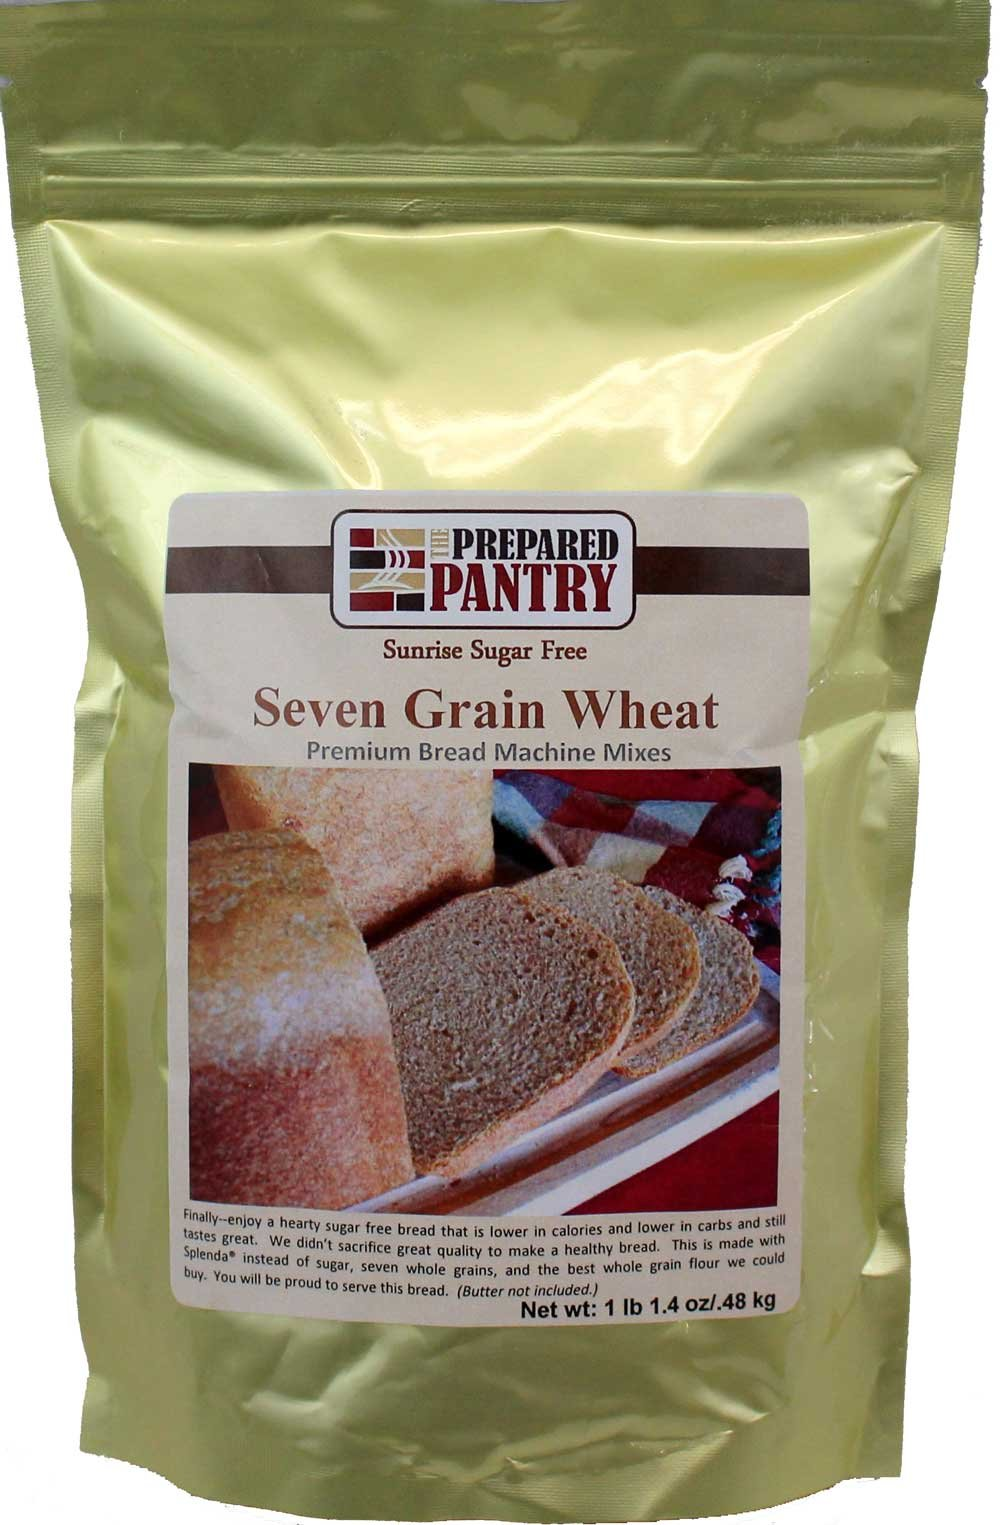 The Prepared Pantry Sunrise Sugar Free 7 Grain Wheat Gourmet Bread Machine Mix, 17.4 Ounce (Pack of 20)